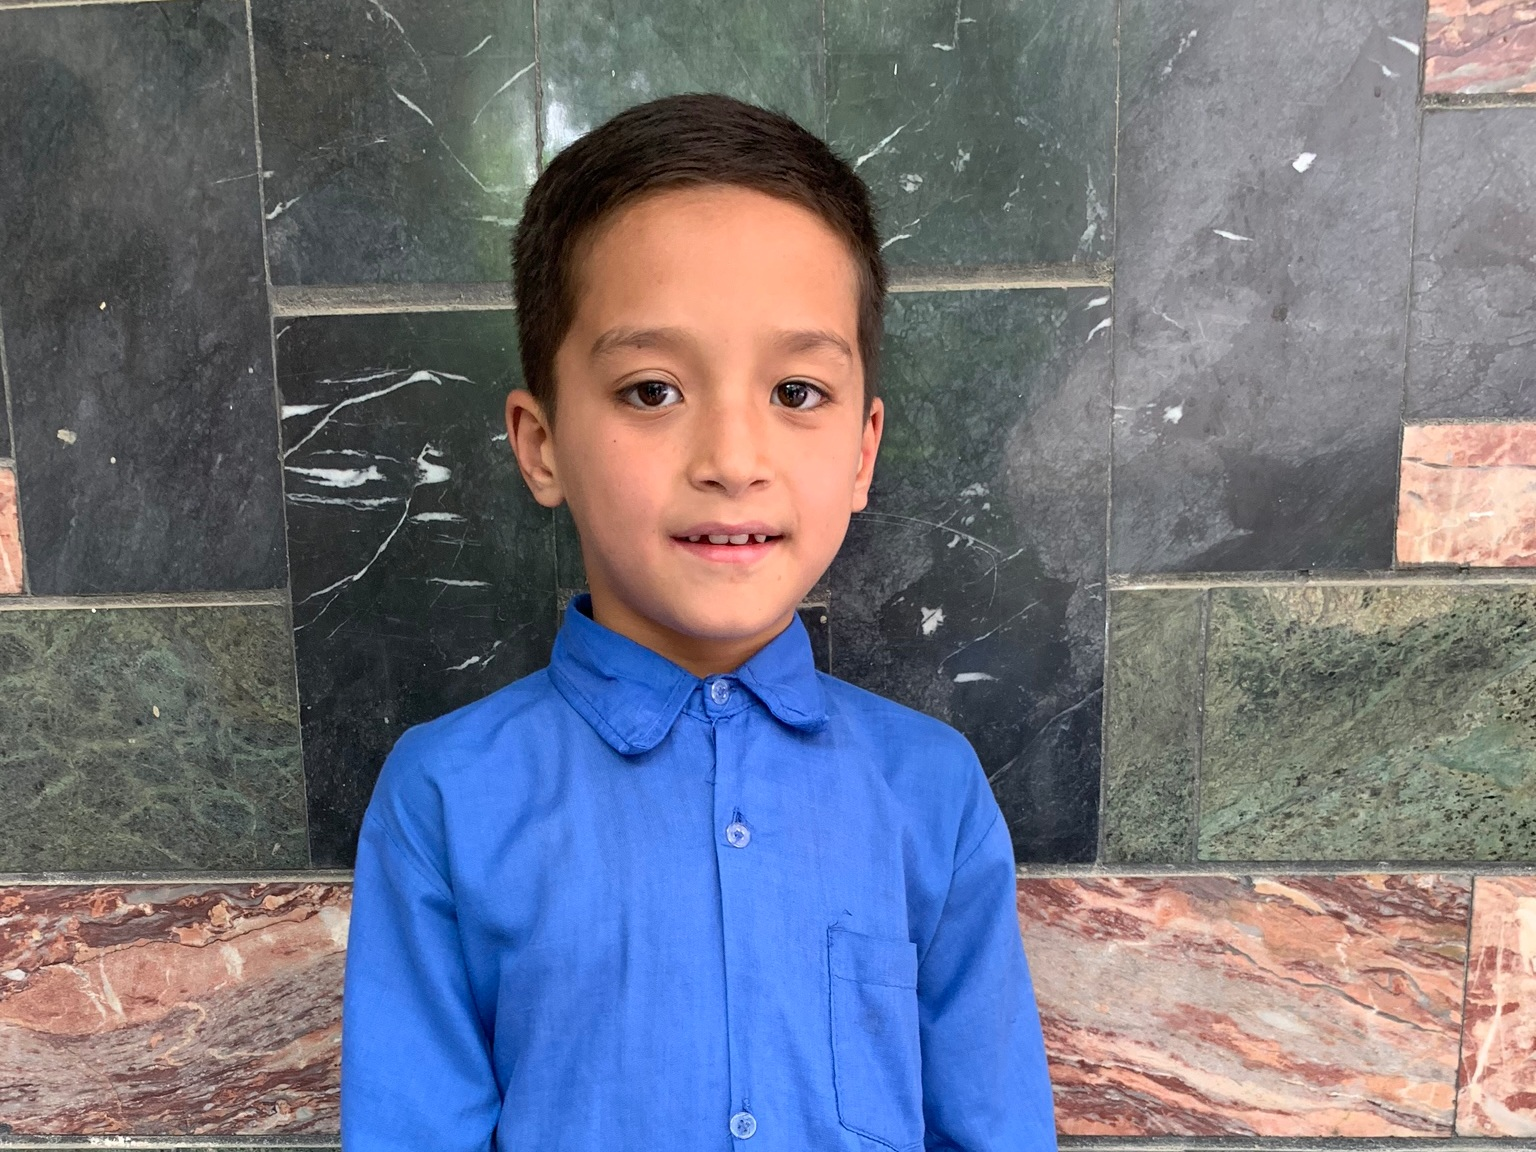 Ali Aliah, Age 9 - Ali Aliah has 5 siblings. His mother does not have work at this time. His father has died.BE ALI ALIAH'S PARTNER>∆